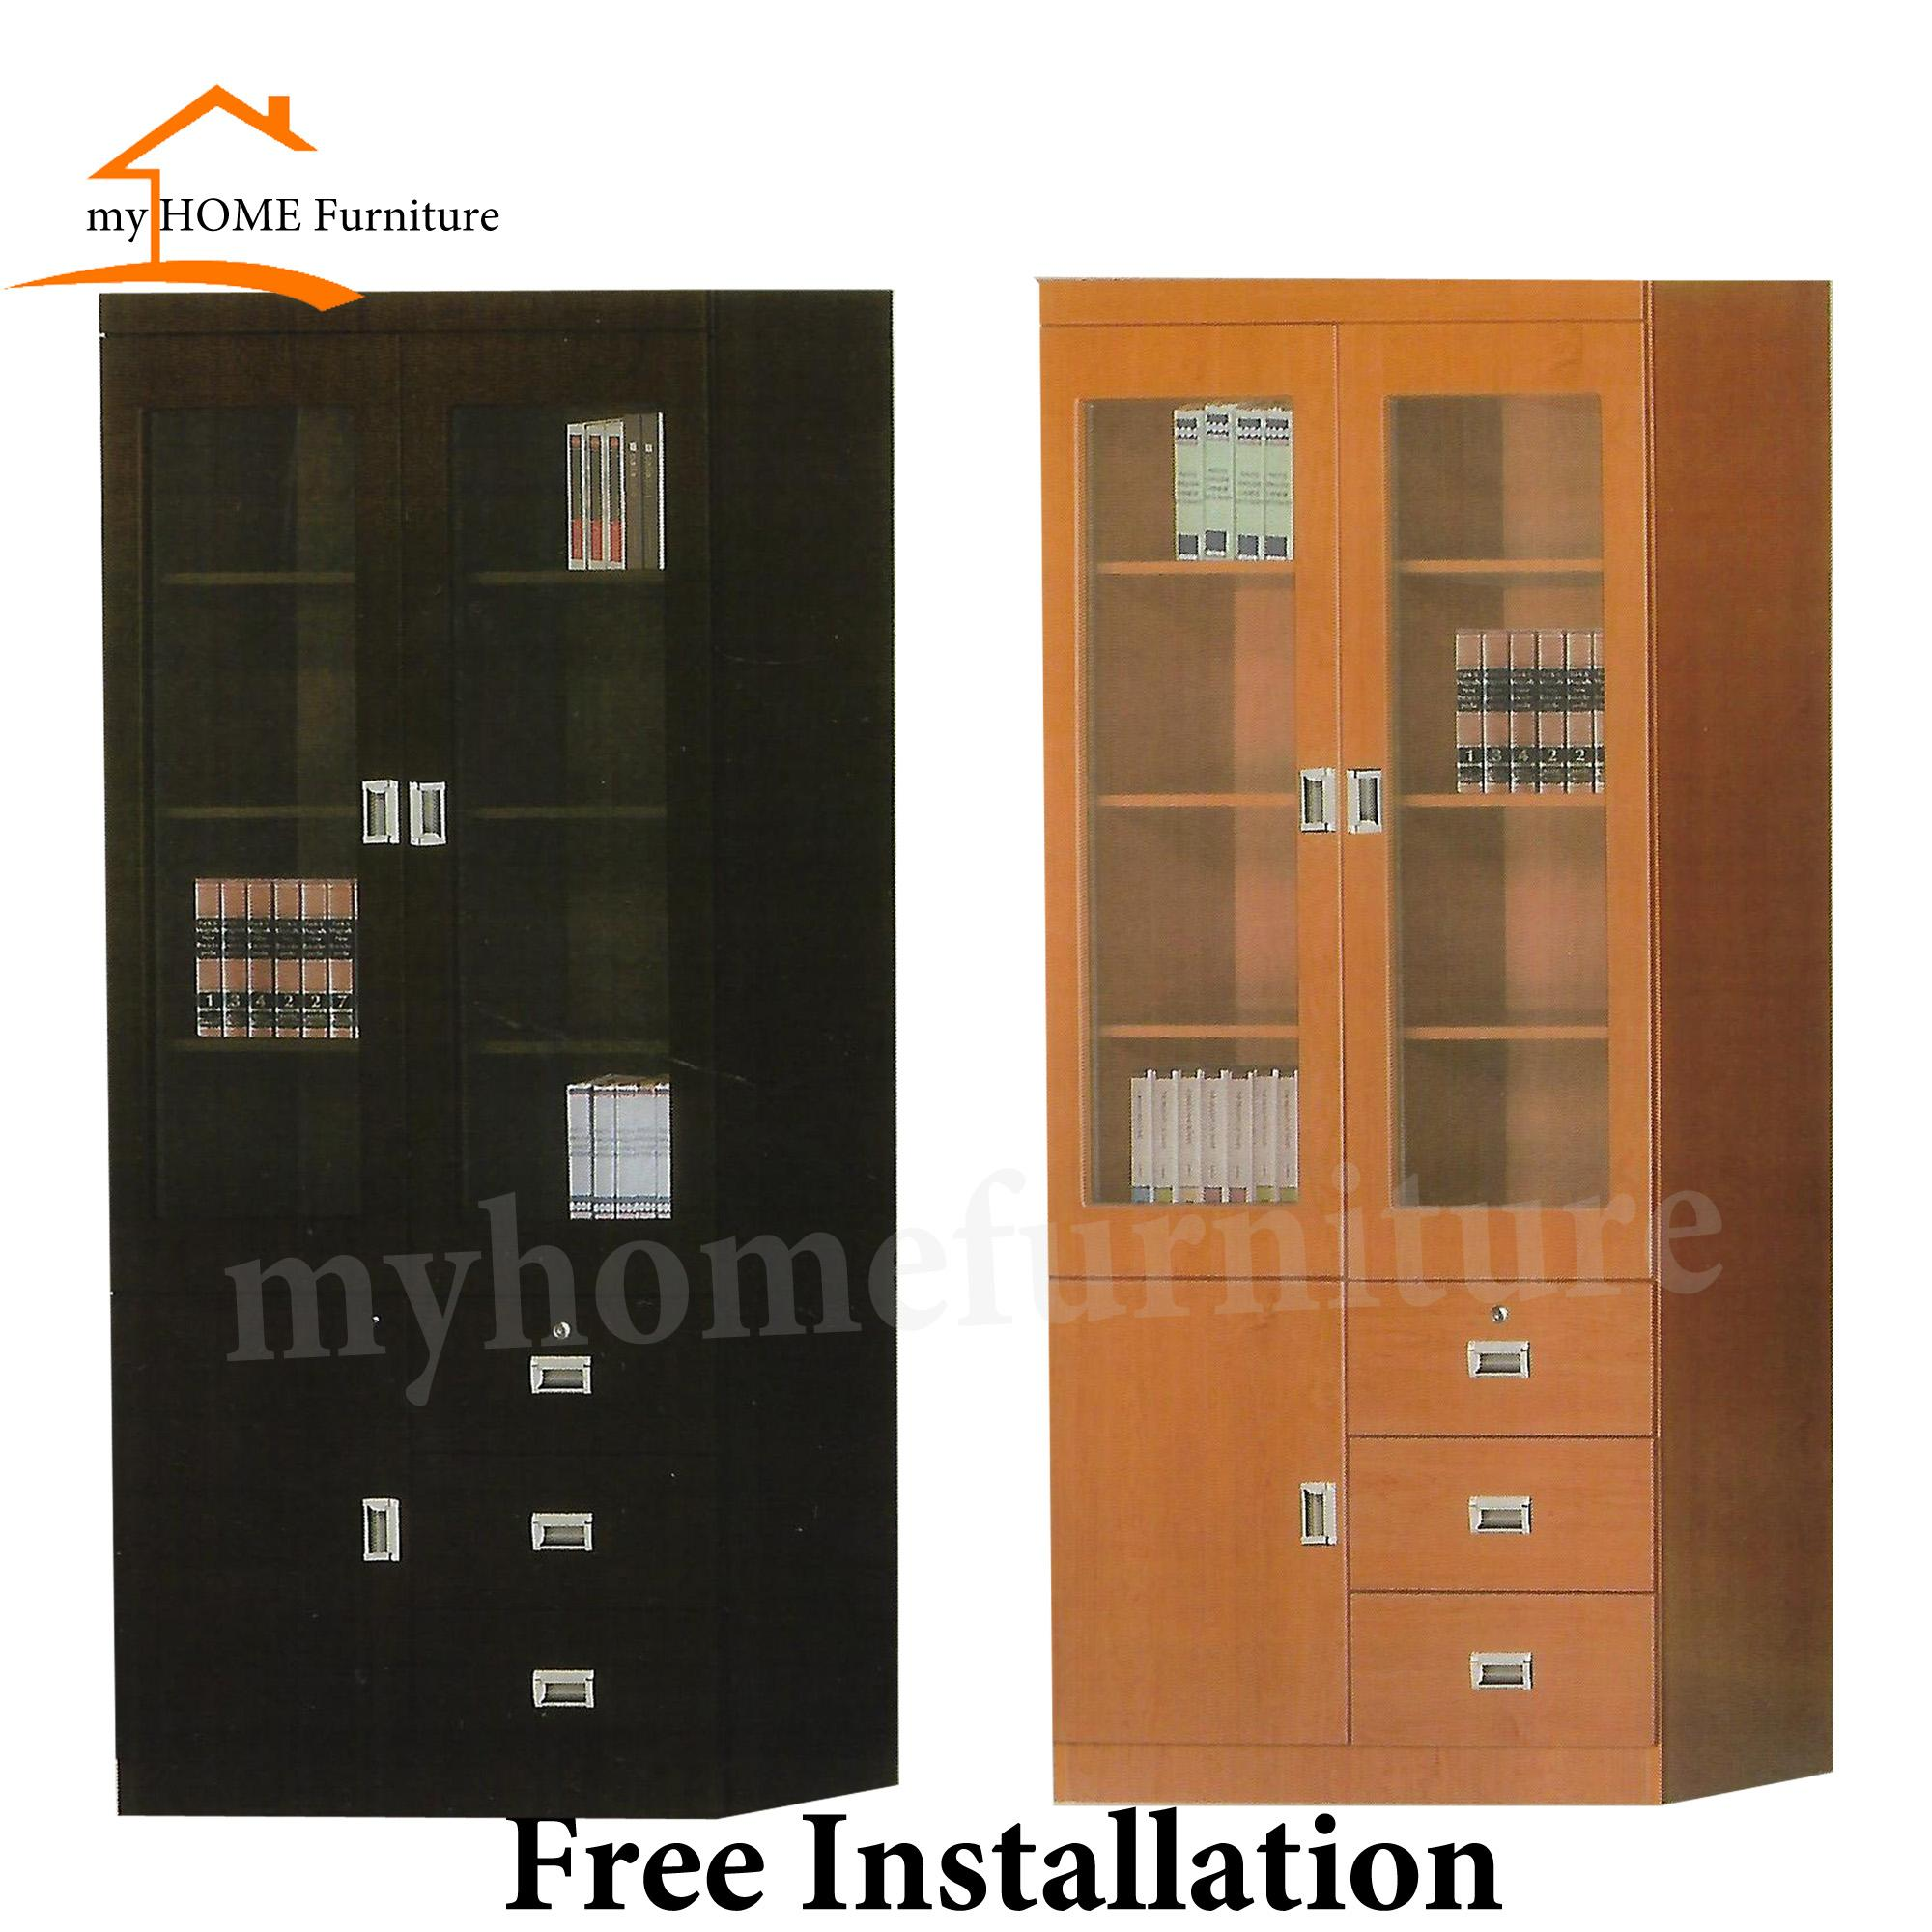 Den II 2 Glass Doors Bookshelf/ Cabinet / Filling Cabinet W/ Drawers (Free Delivery and Installation) (2 Colours)